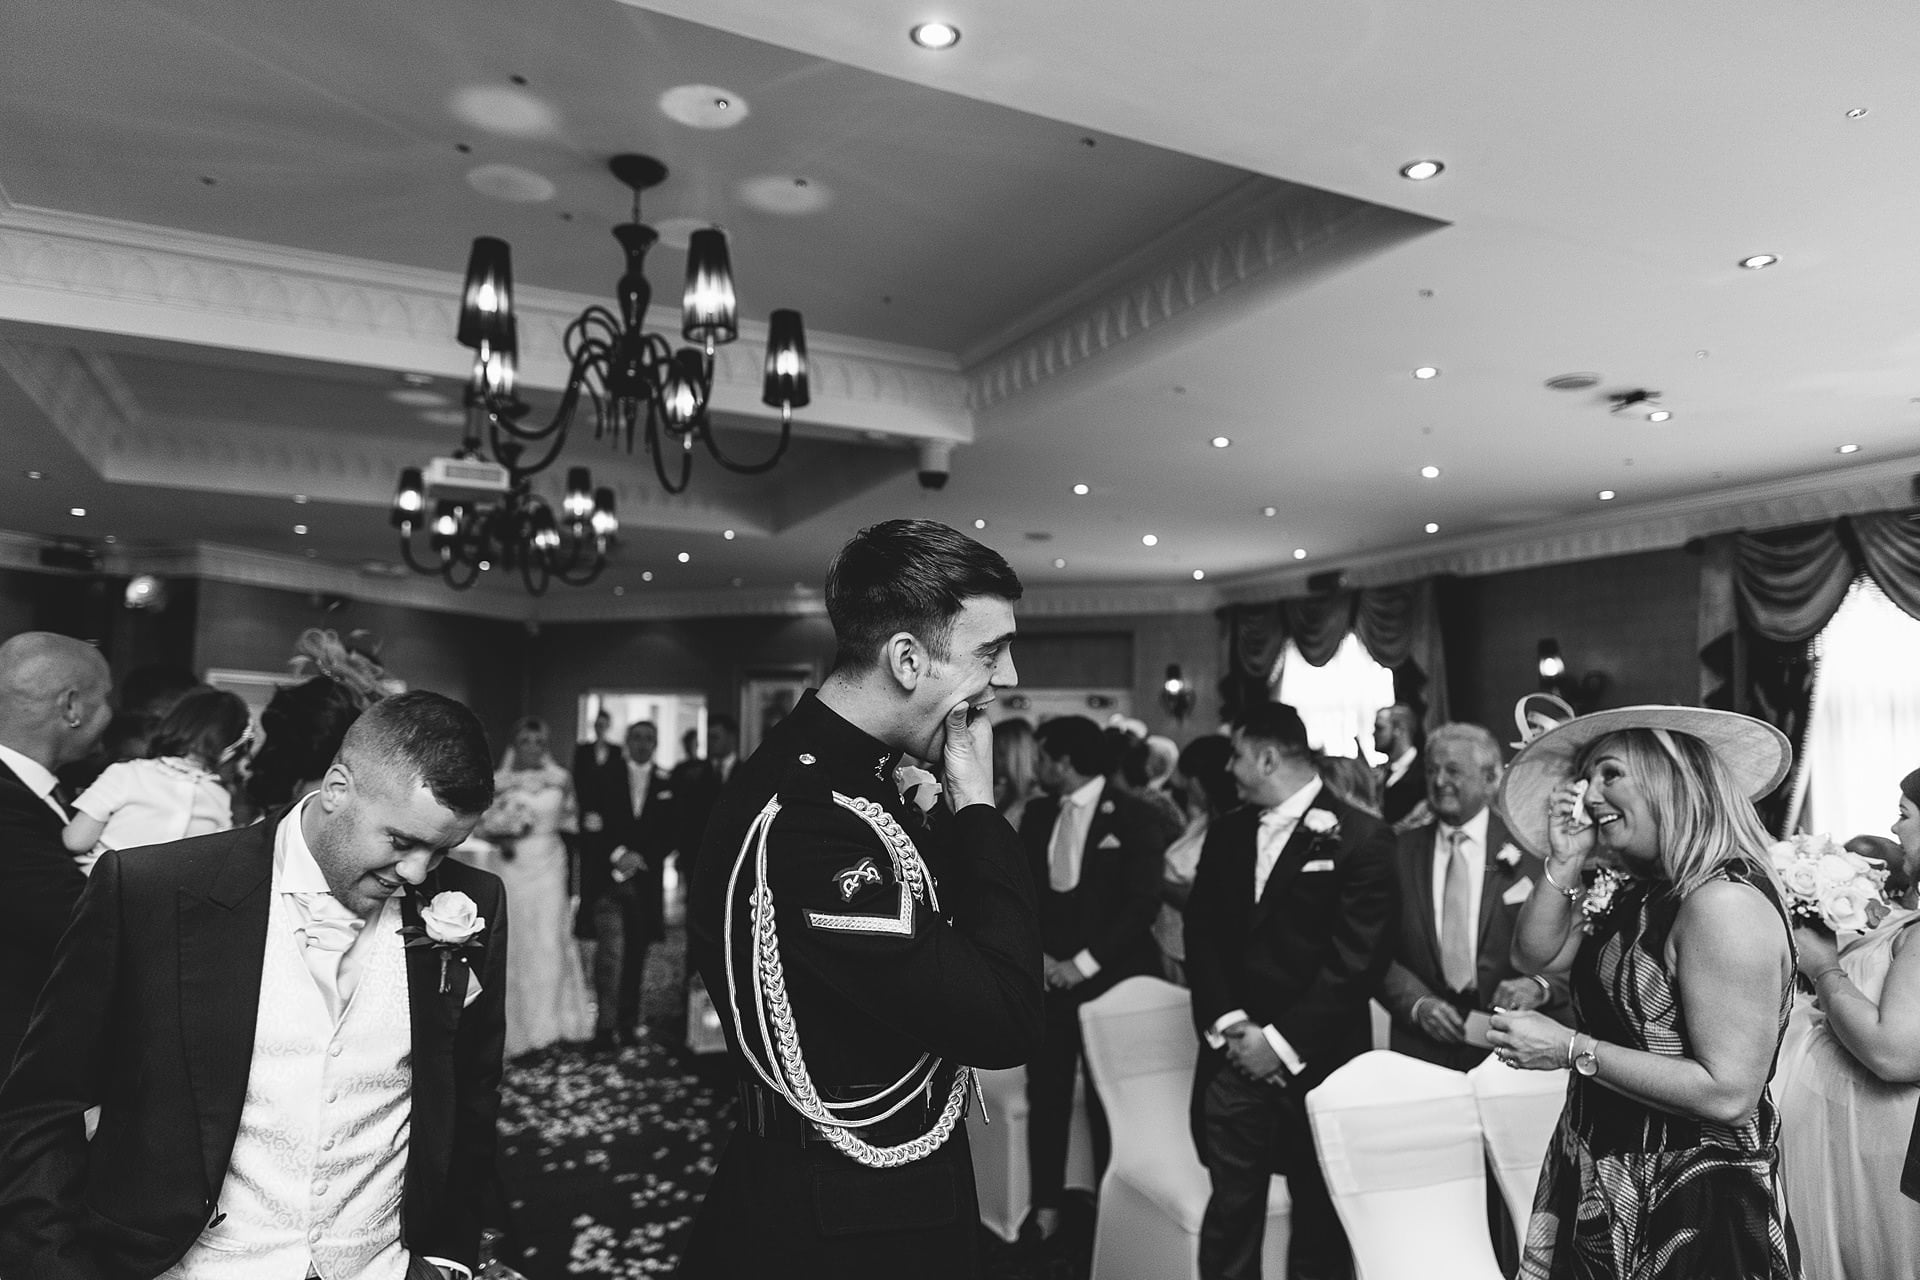 Shropshire Documentary Wedding Photographer captures pure emotion as the groom waits for his beautiful bride